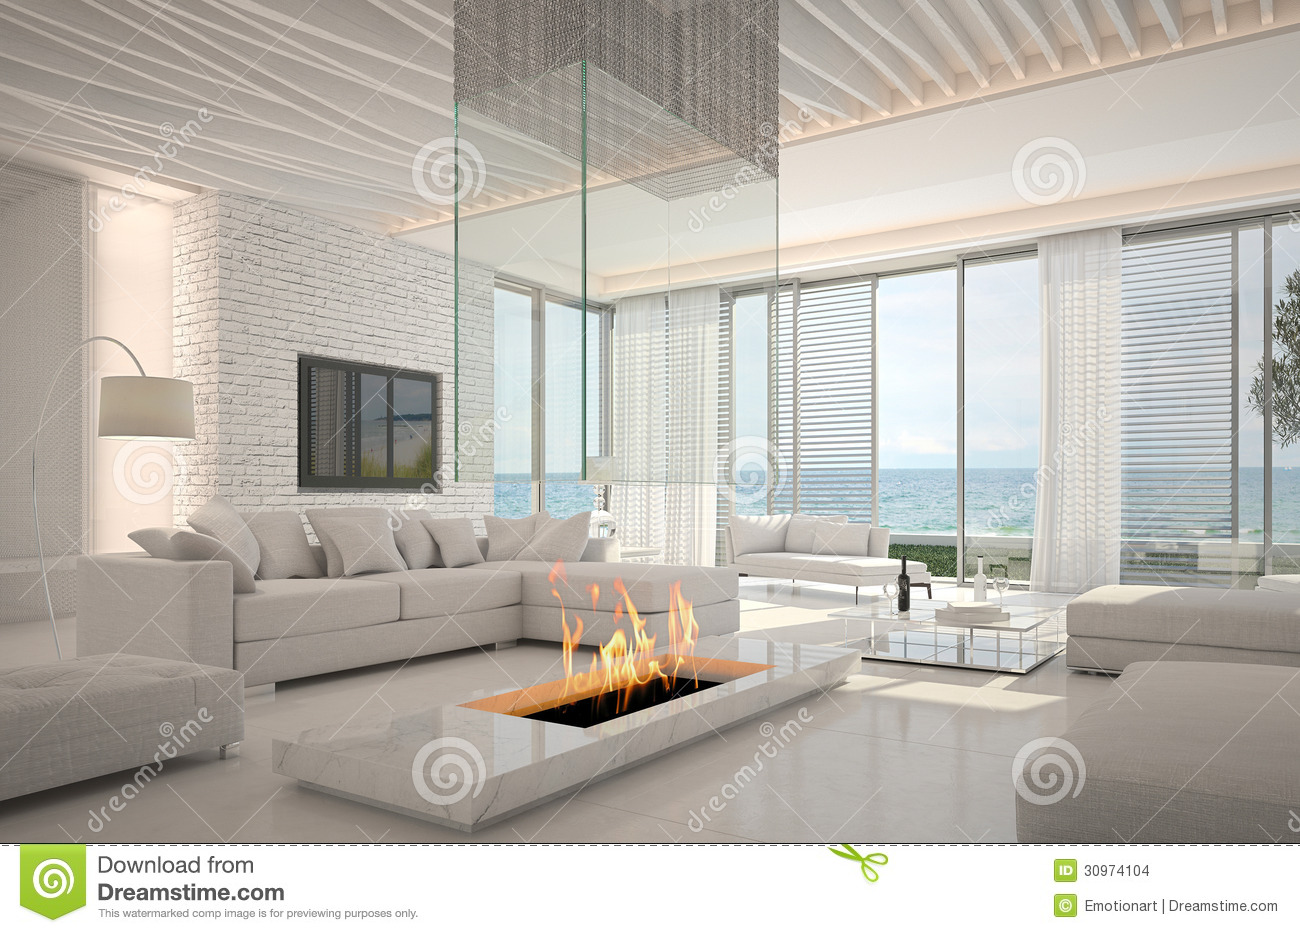 attic furniture ideas - Amazing Loft Living Room Interior With Seascape View Stock